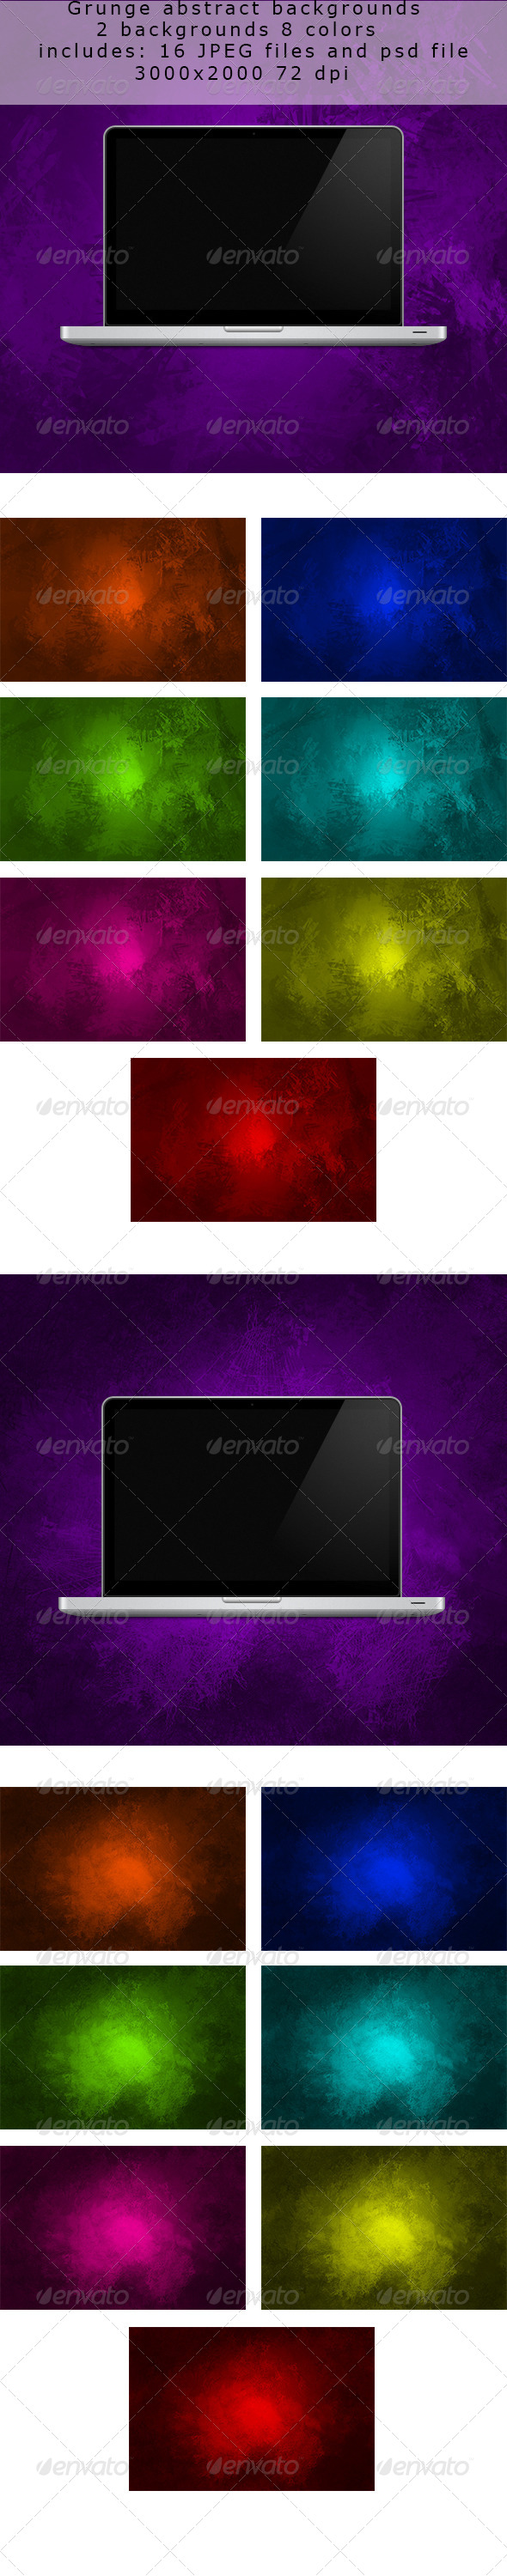 GraphicRiver Grunge Abstract Backgrounds 2 in 1 5047880